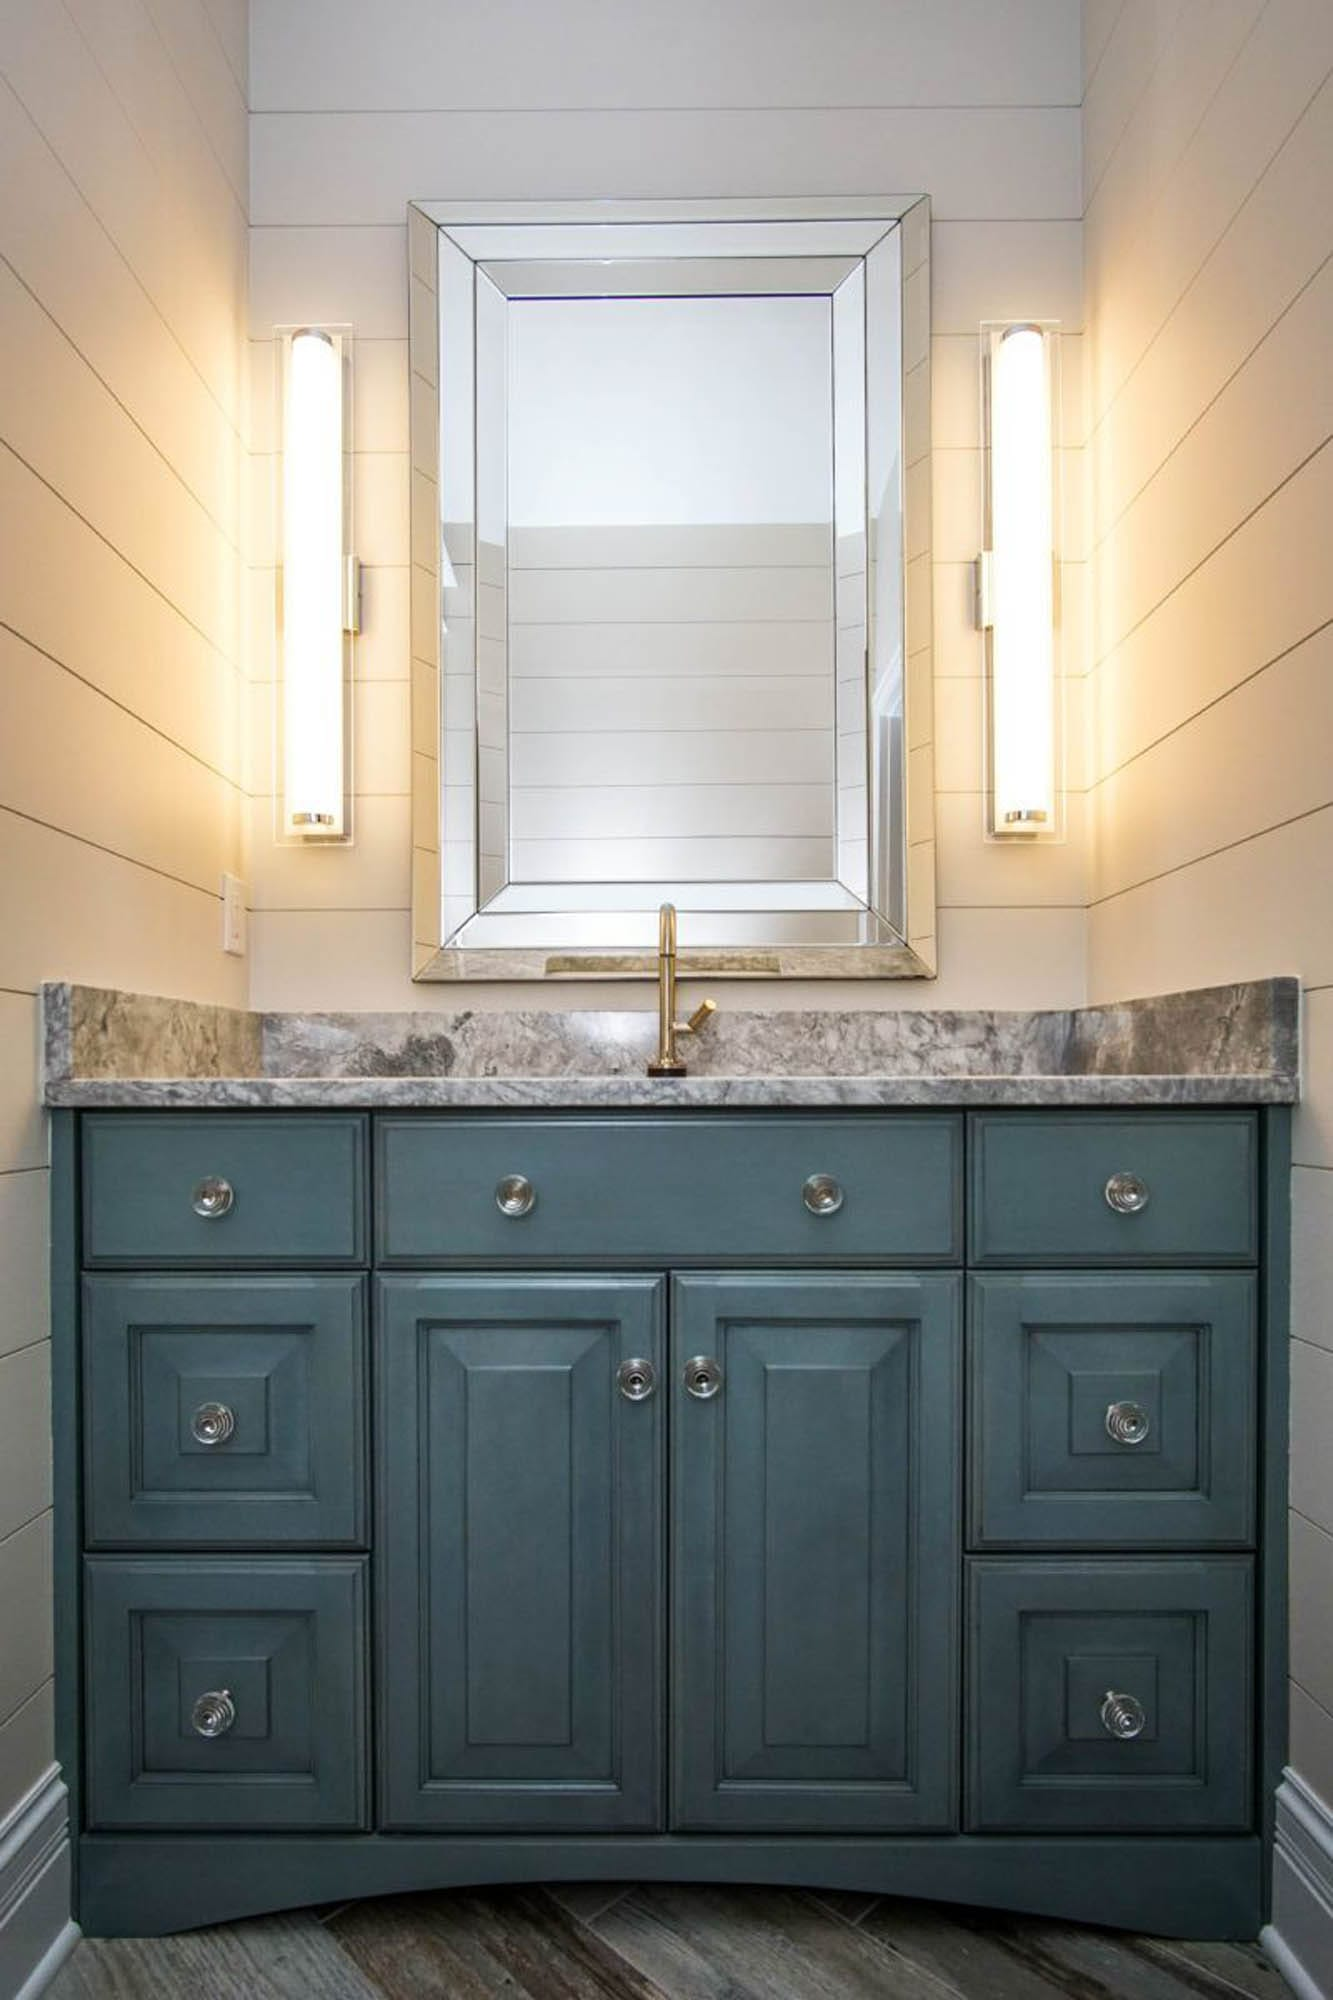 Moody turquoise cabinet